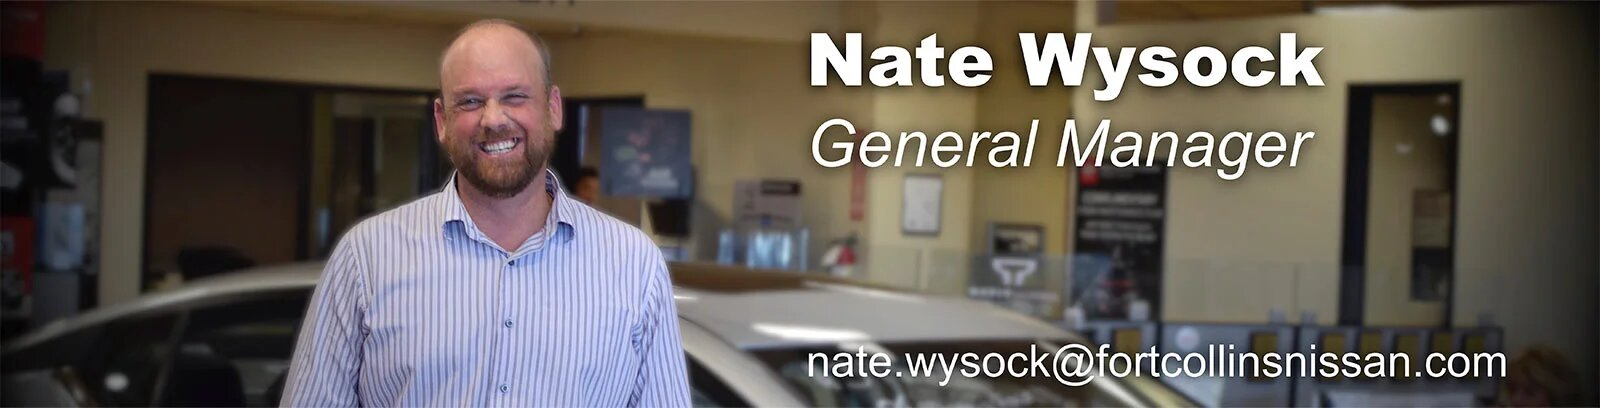 General Manager Nate Wysock